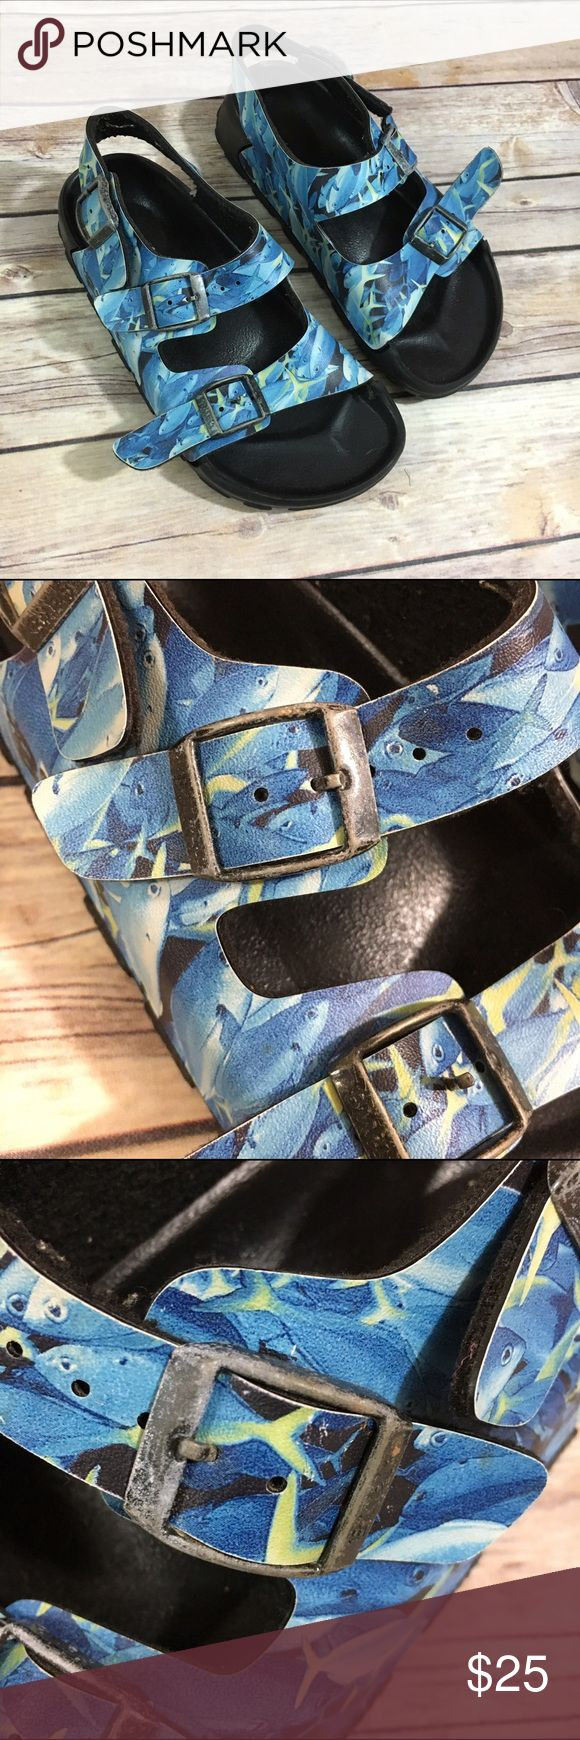 """Birkis Birkenstock Blue Fish Sandals Birko Flor 32 Birkis Birkenstock Blue Fish Sandals Birko Flor Blue Fish 32  These are a 32 which Birkenstock says is a 1-1.5 kids.  Good to very good used condition.  These have been worn but were definitely not the """"everyday favorite"""" shoe.  :)  At least two more kids wear left in them, for sure.  Buckles show more wear than the rest of the shoe, in my opinion.  Super cute fish print.  #birkis #birkoflor #sandals #blue #fish #black #birkenstock…"""